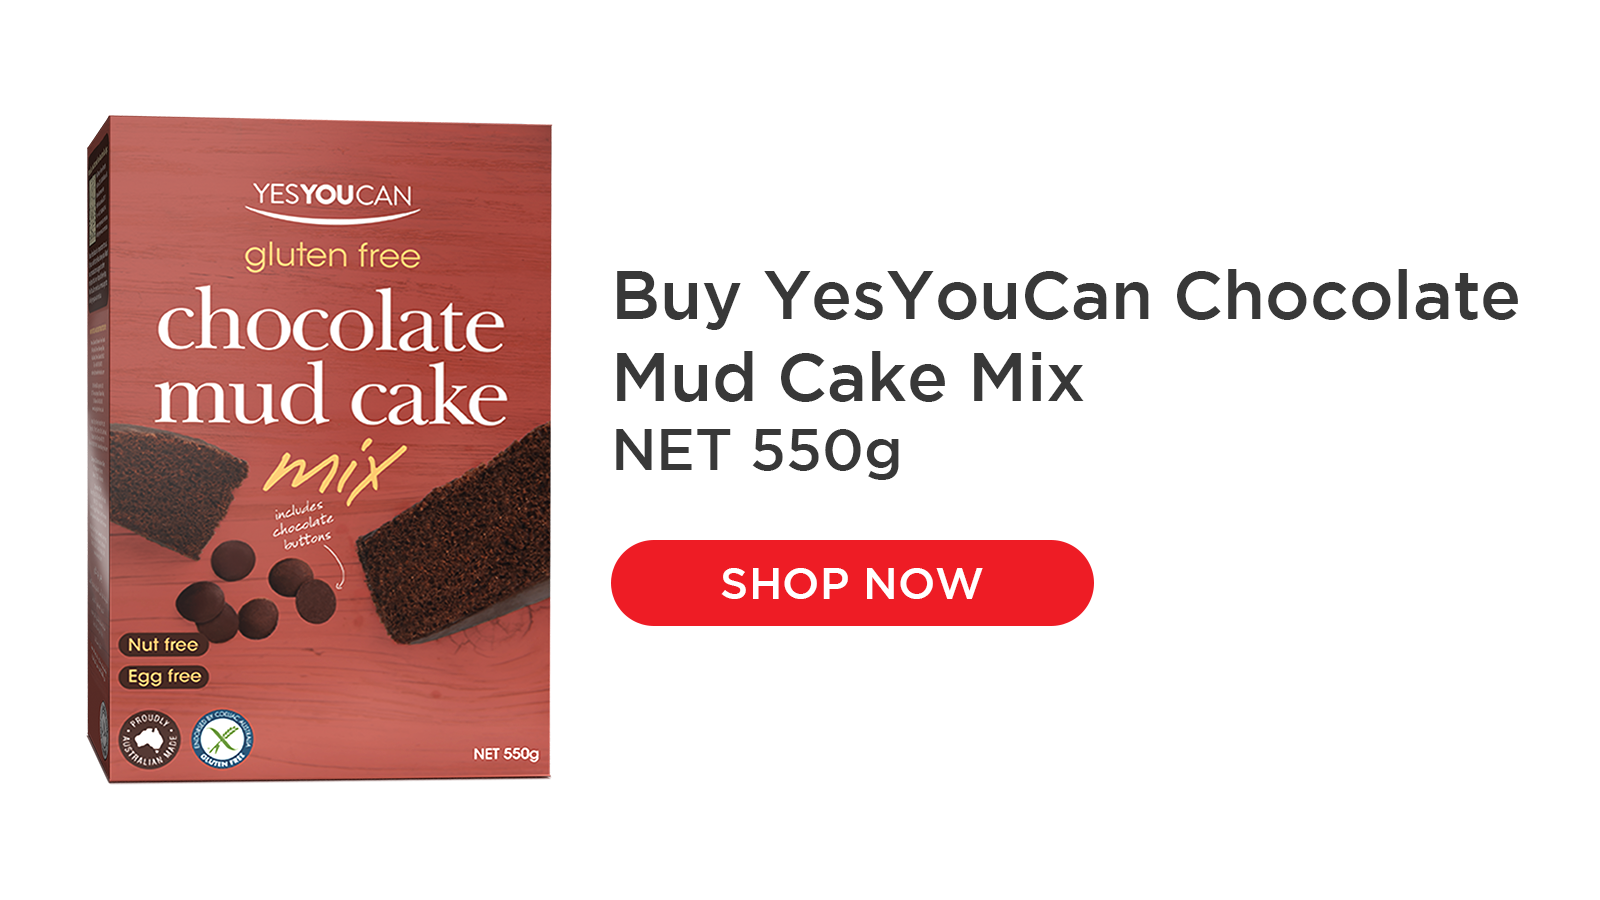 YesYouCan Chocolate Mud Cake is a rich and decadent treat that everyone will enjoy. So easy to make, just add wet ingredients, stir with a spoon and bake, no mixer required! High quality dark chocolate buttons are included to make a spectacular ganache topping.